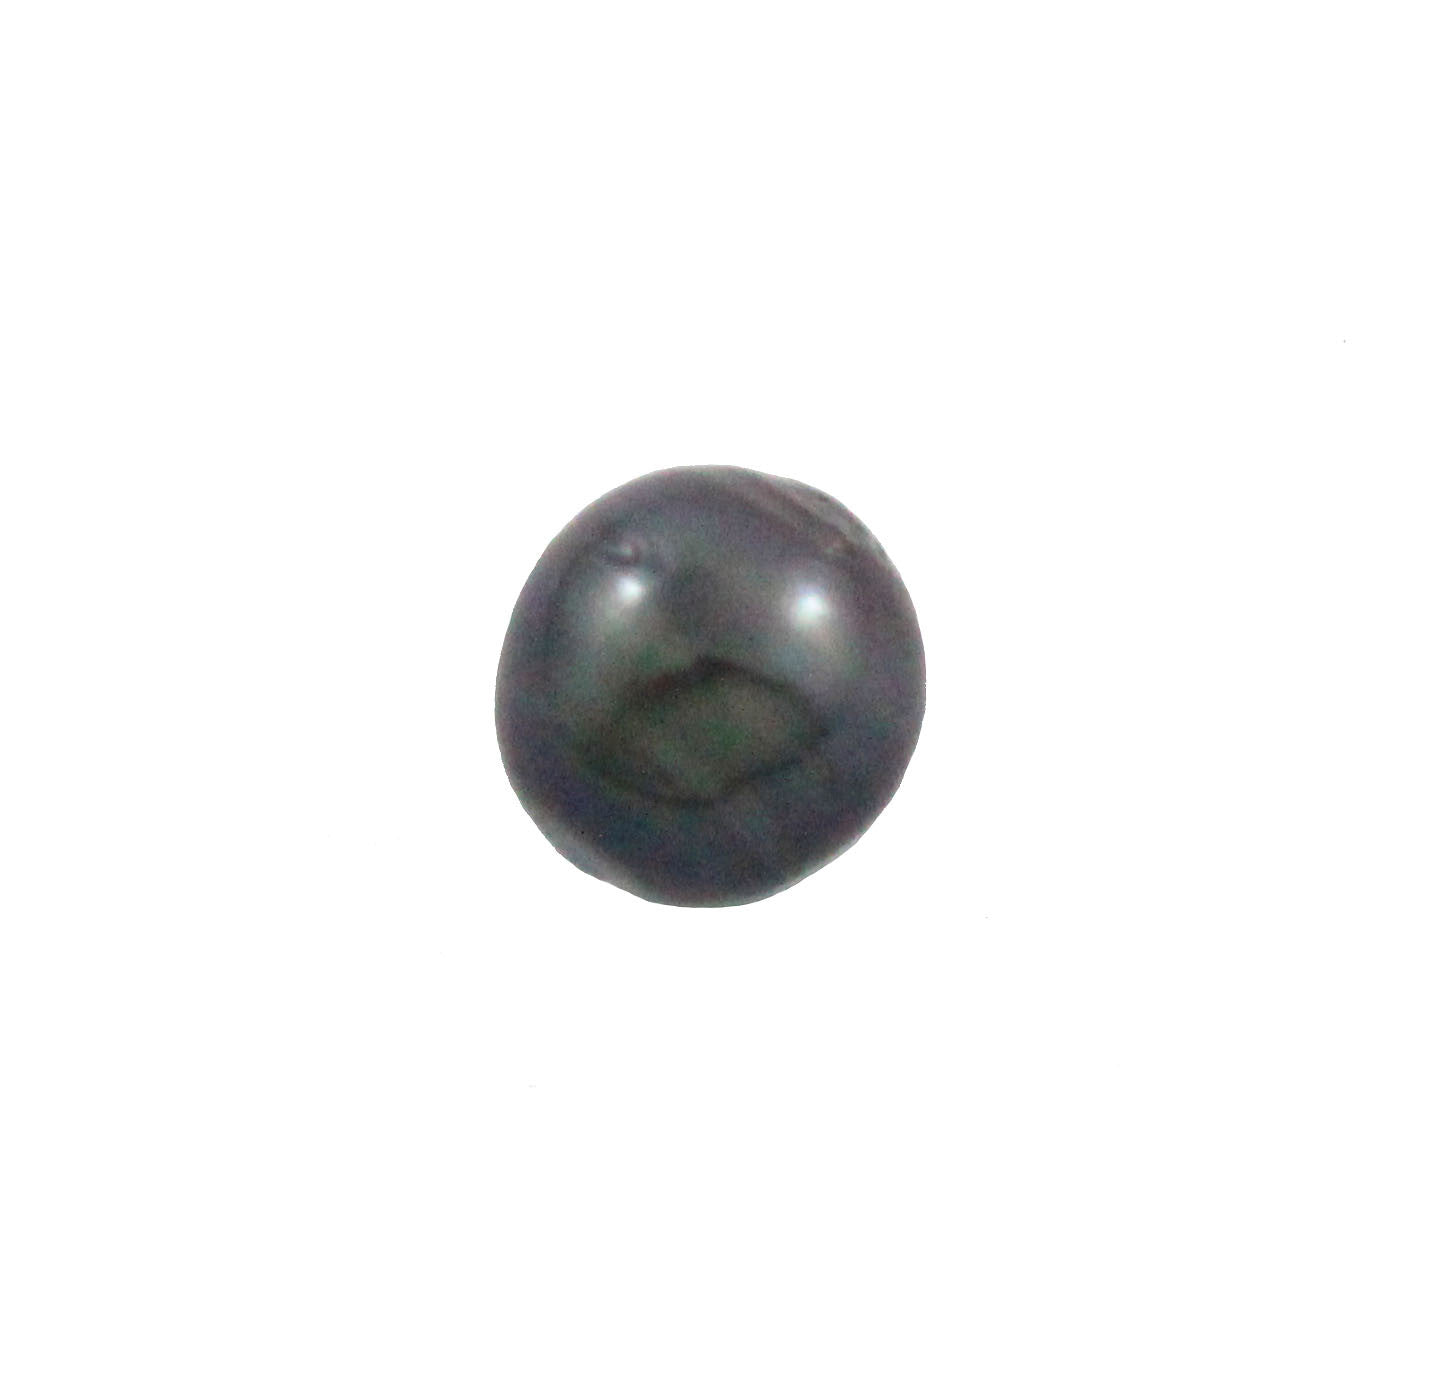 Tahitian pearl undrilled 1.05gr mm 9.18x8.85mm - Purchase only with custom order - Sarah Hughes - 4